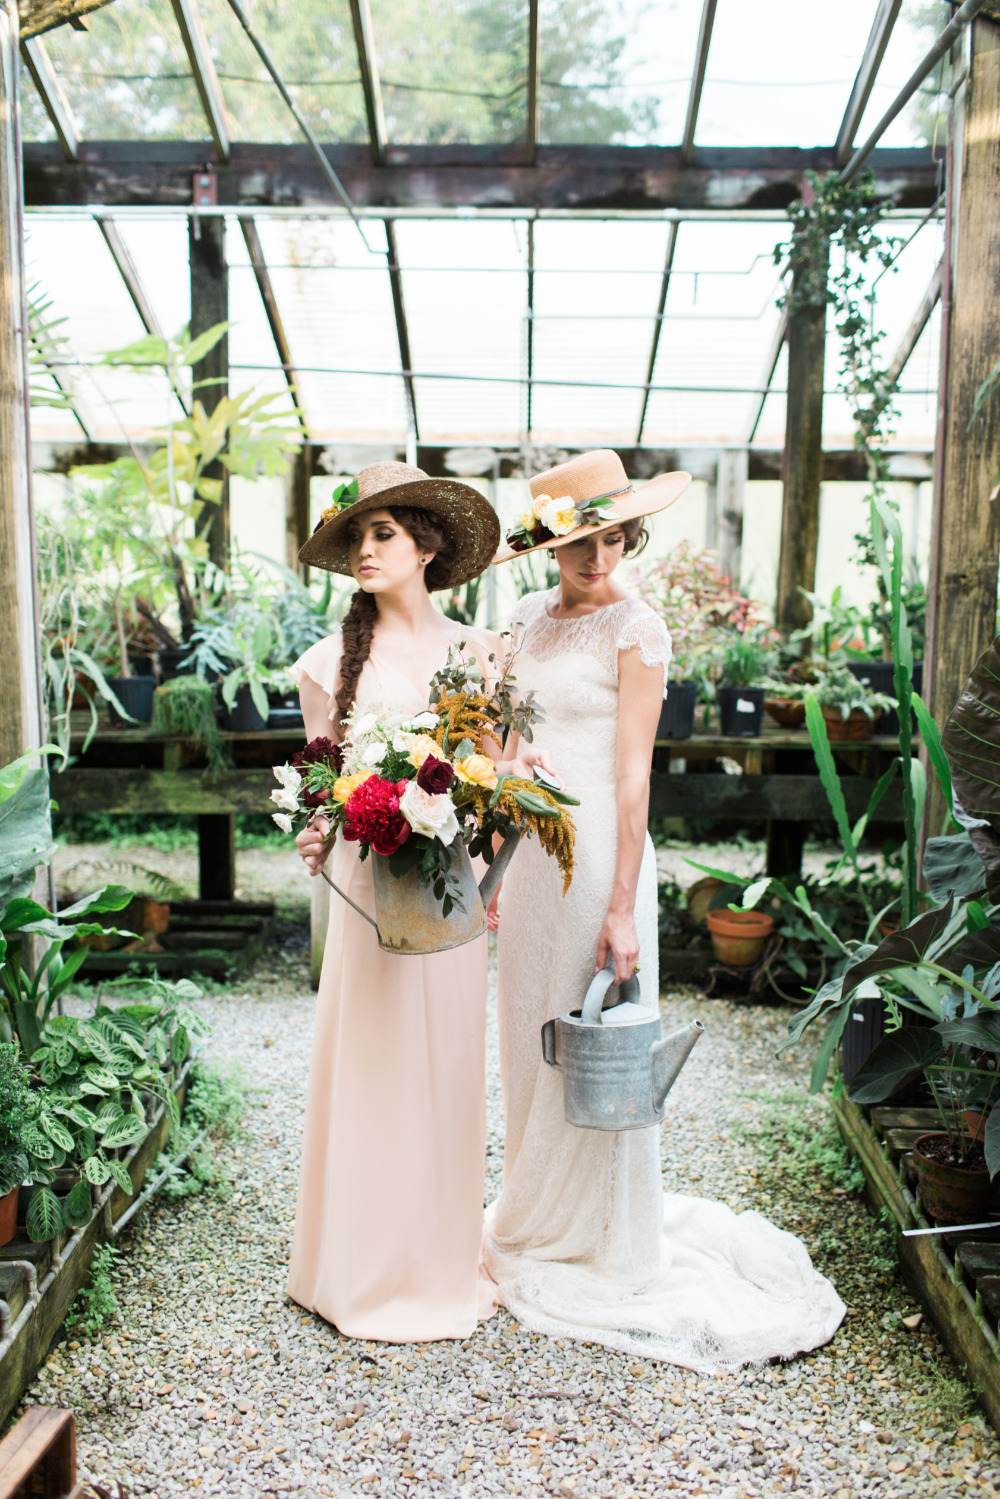 Gorgeous Greenhouse Garden Wedding Ideas